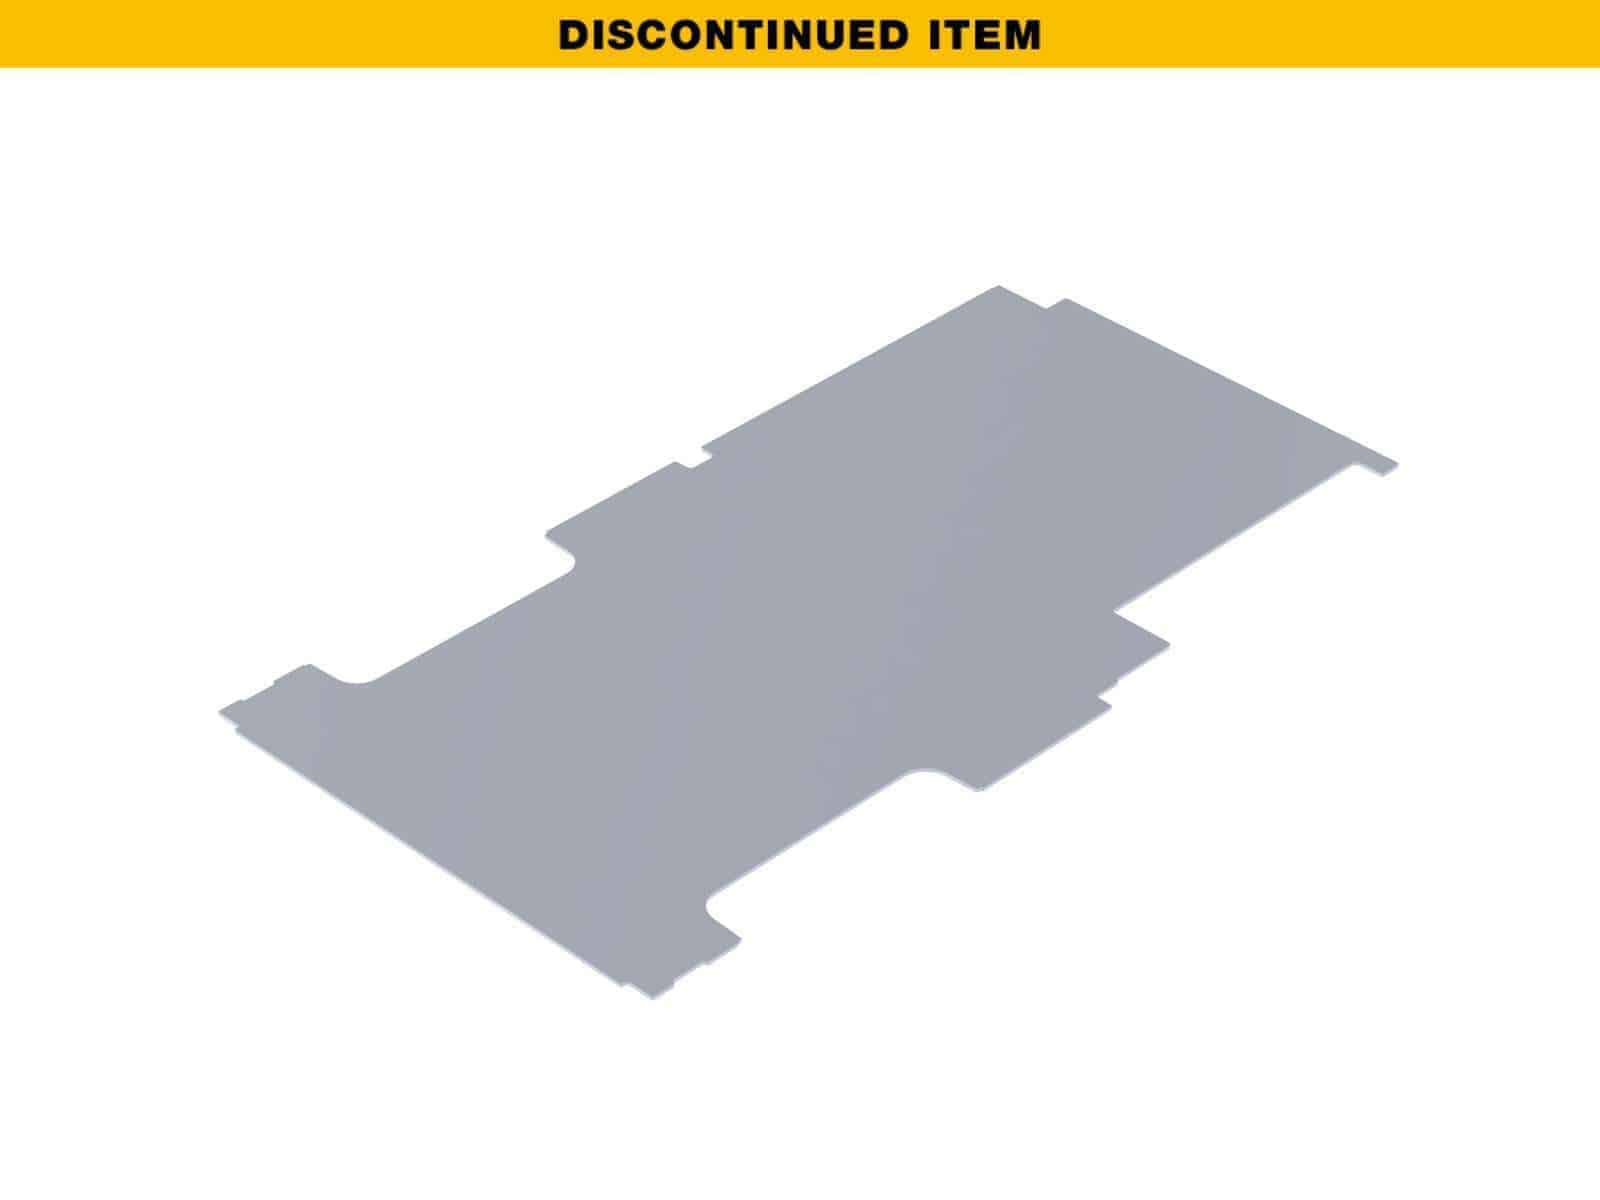 HD-Ultragrip-Van-Floor-Liner-Transit-Long-148-WB-6533-discontinued